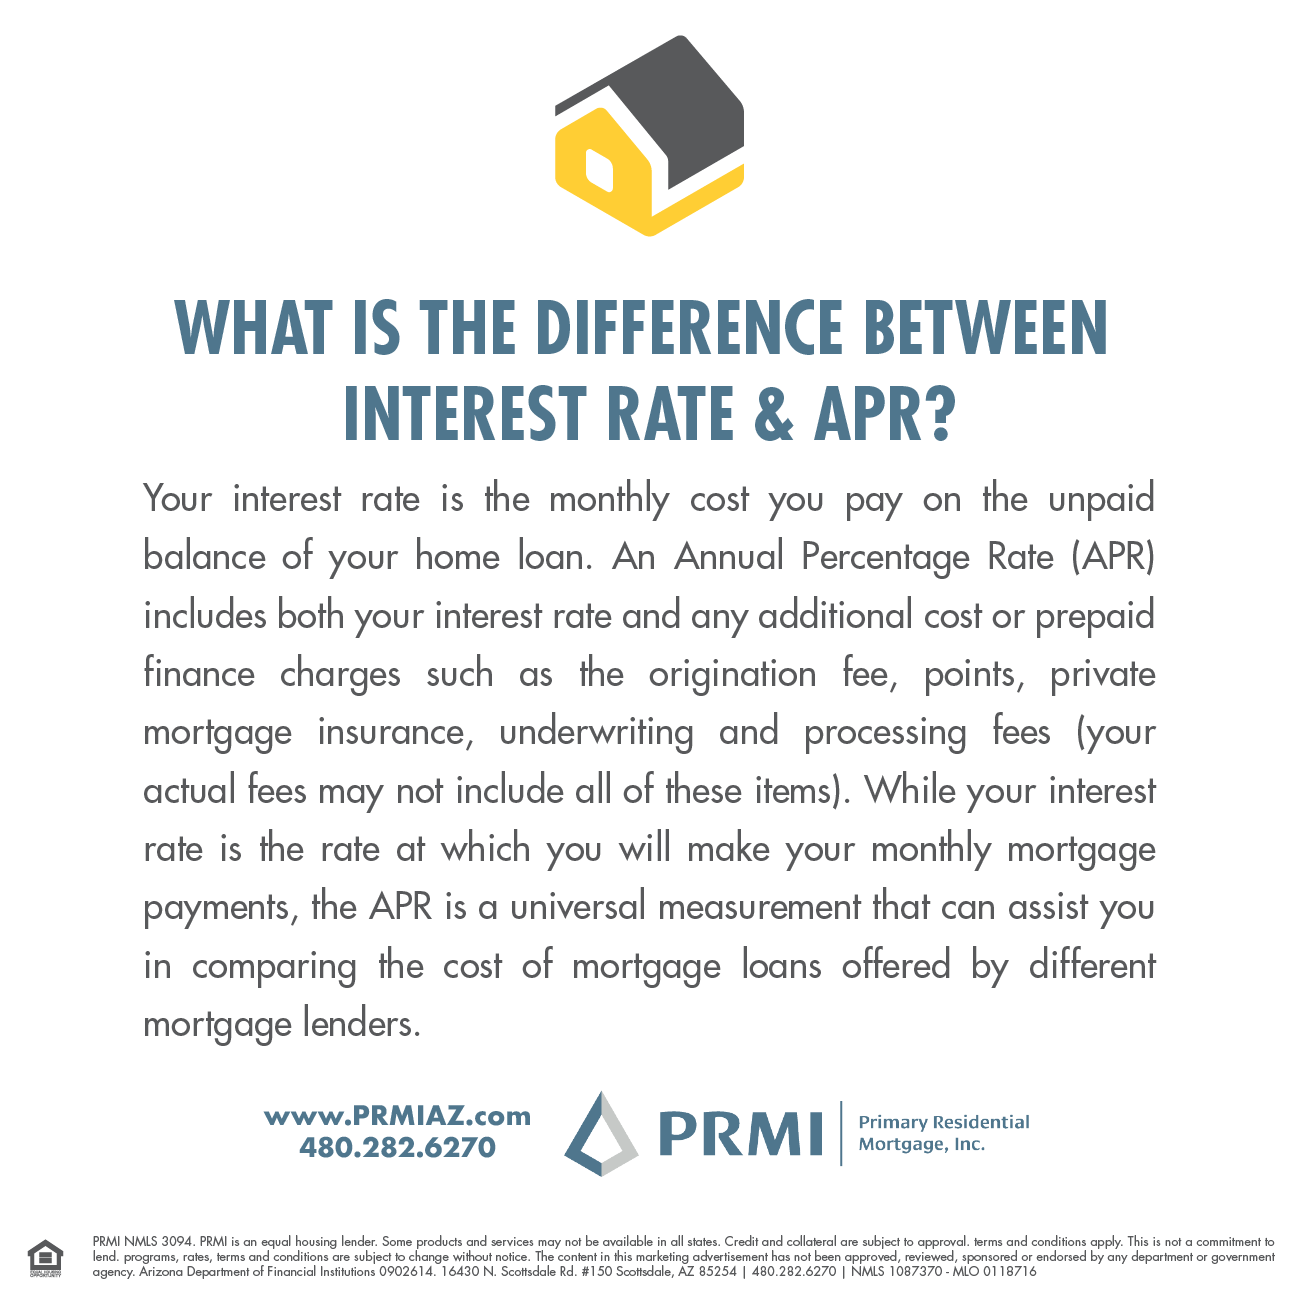 Your Interest Rate Is The Monthly Cost You Pay On The Unpaid